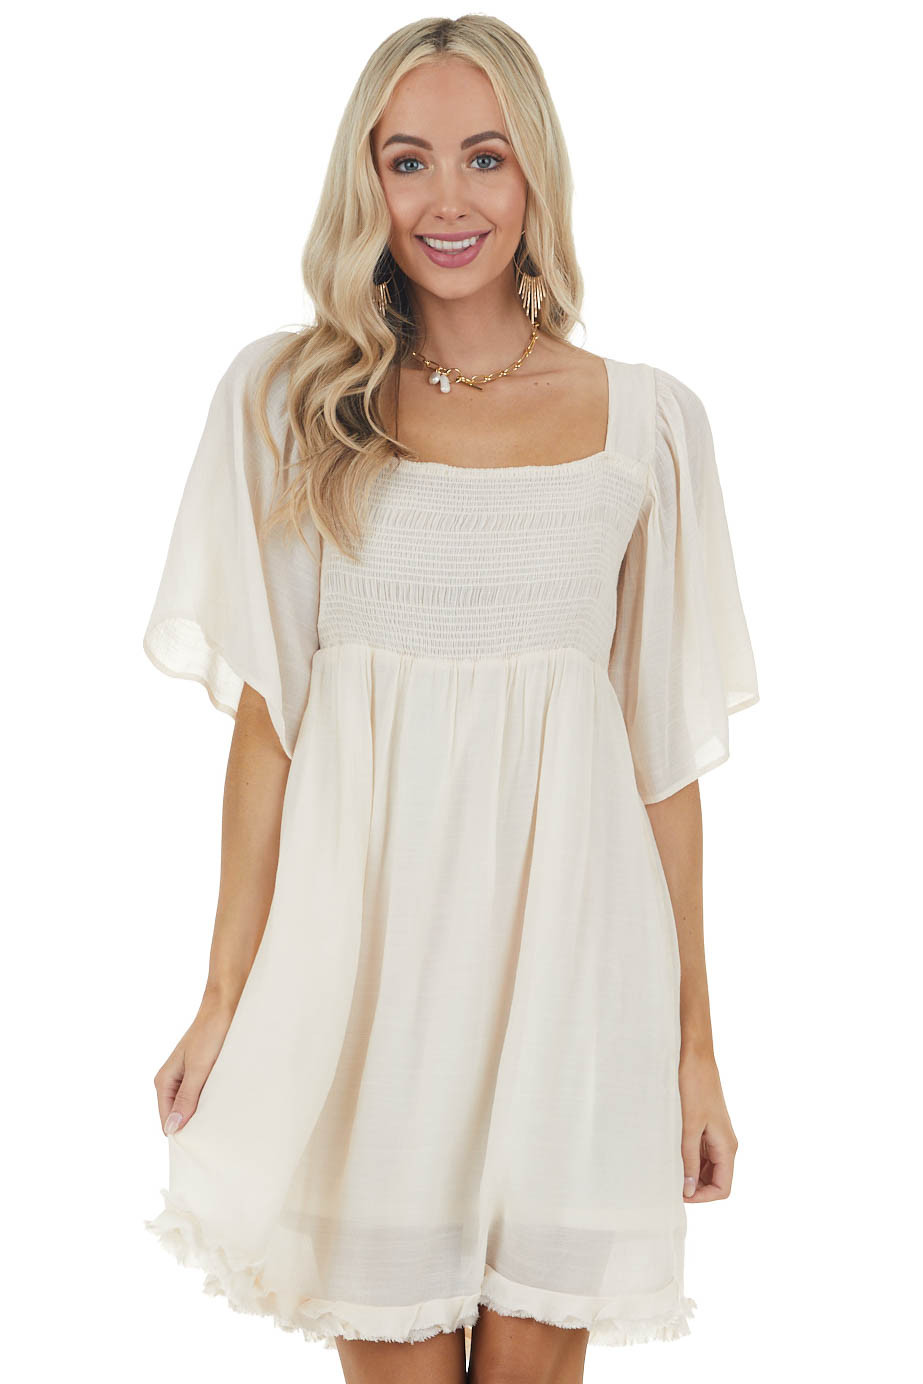 Champagne Smocked Babydoll Short Dress with Flutter Sleeves